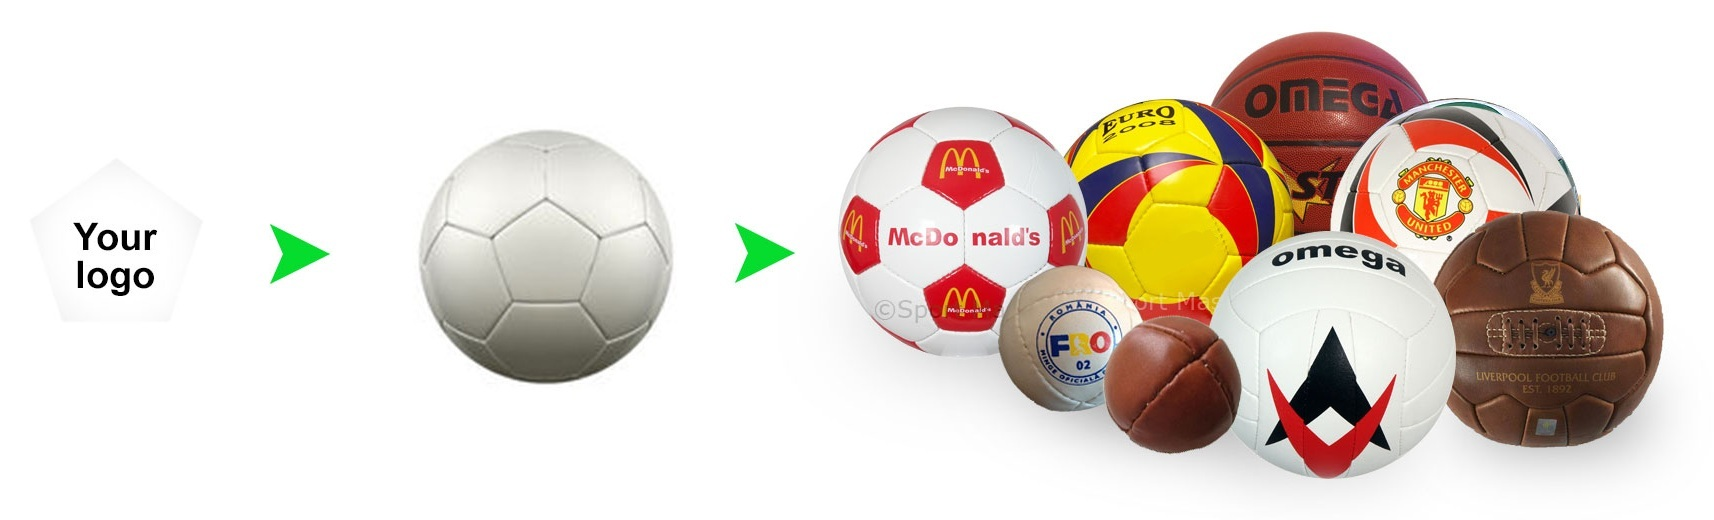 Production process of custom balls with your logo